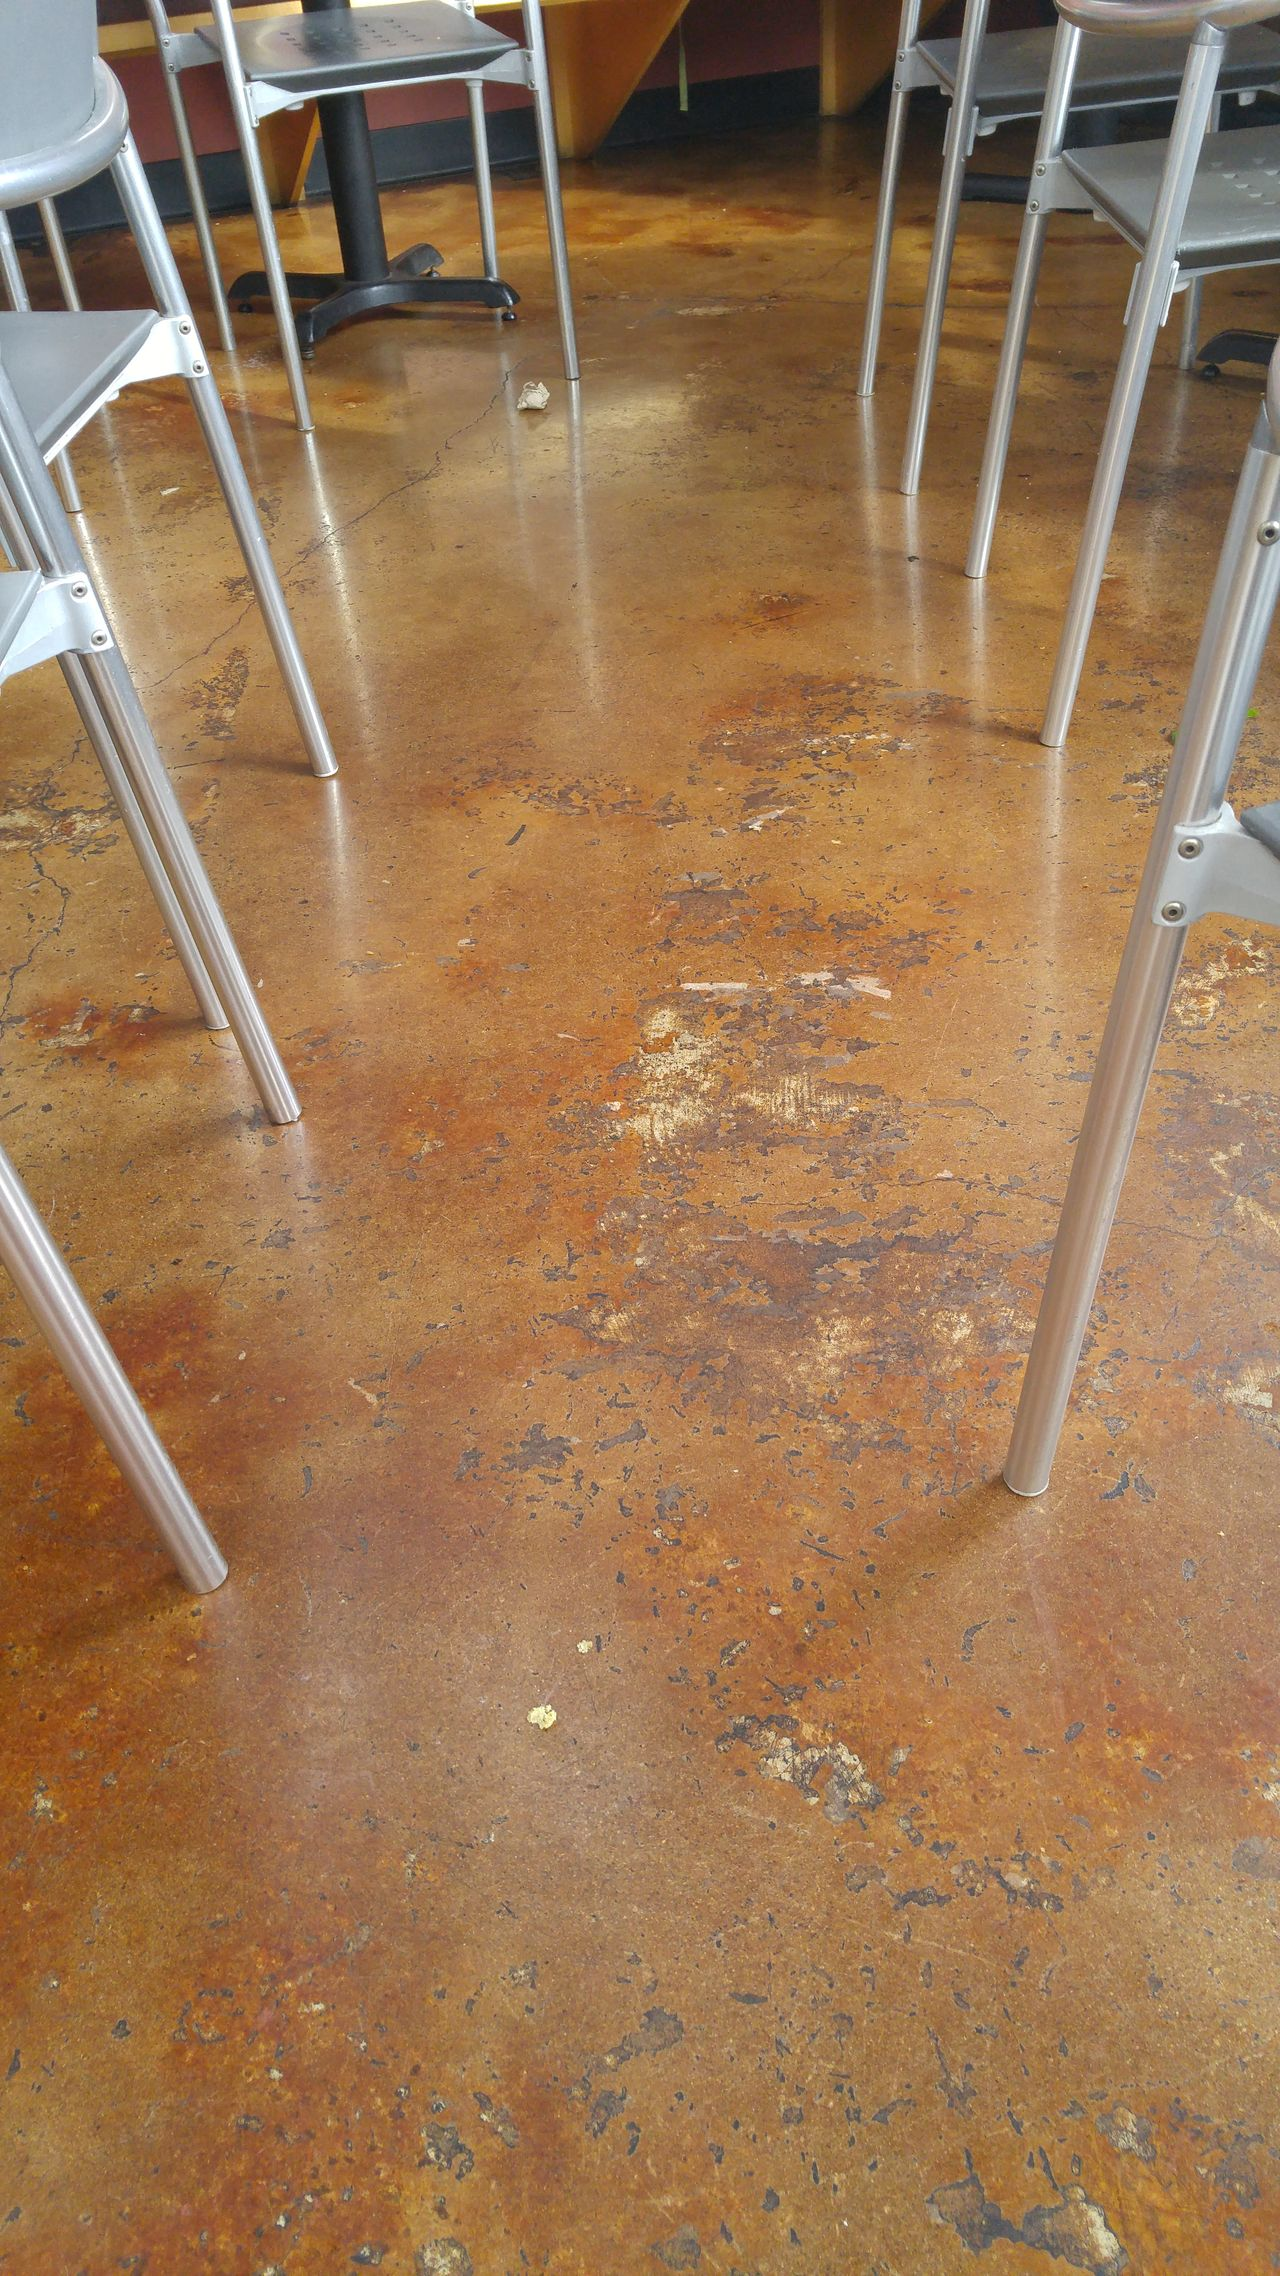 Abstract Tables And Chairs Concrete Concrete Floor Aluminium Restaurant Aluminum Chairs Modern Rustic The Week On EyeEm